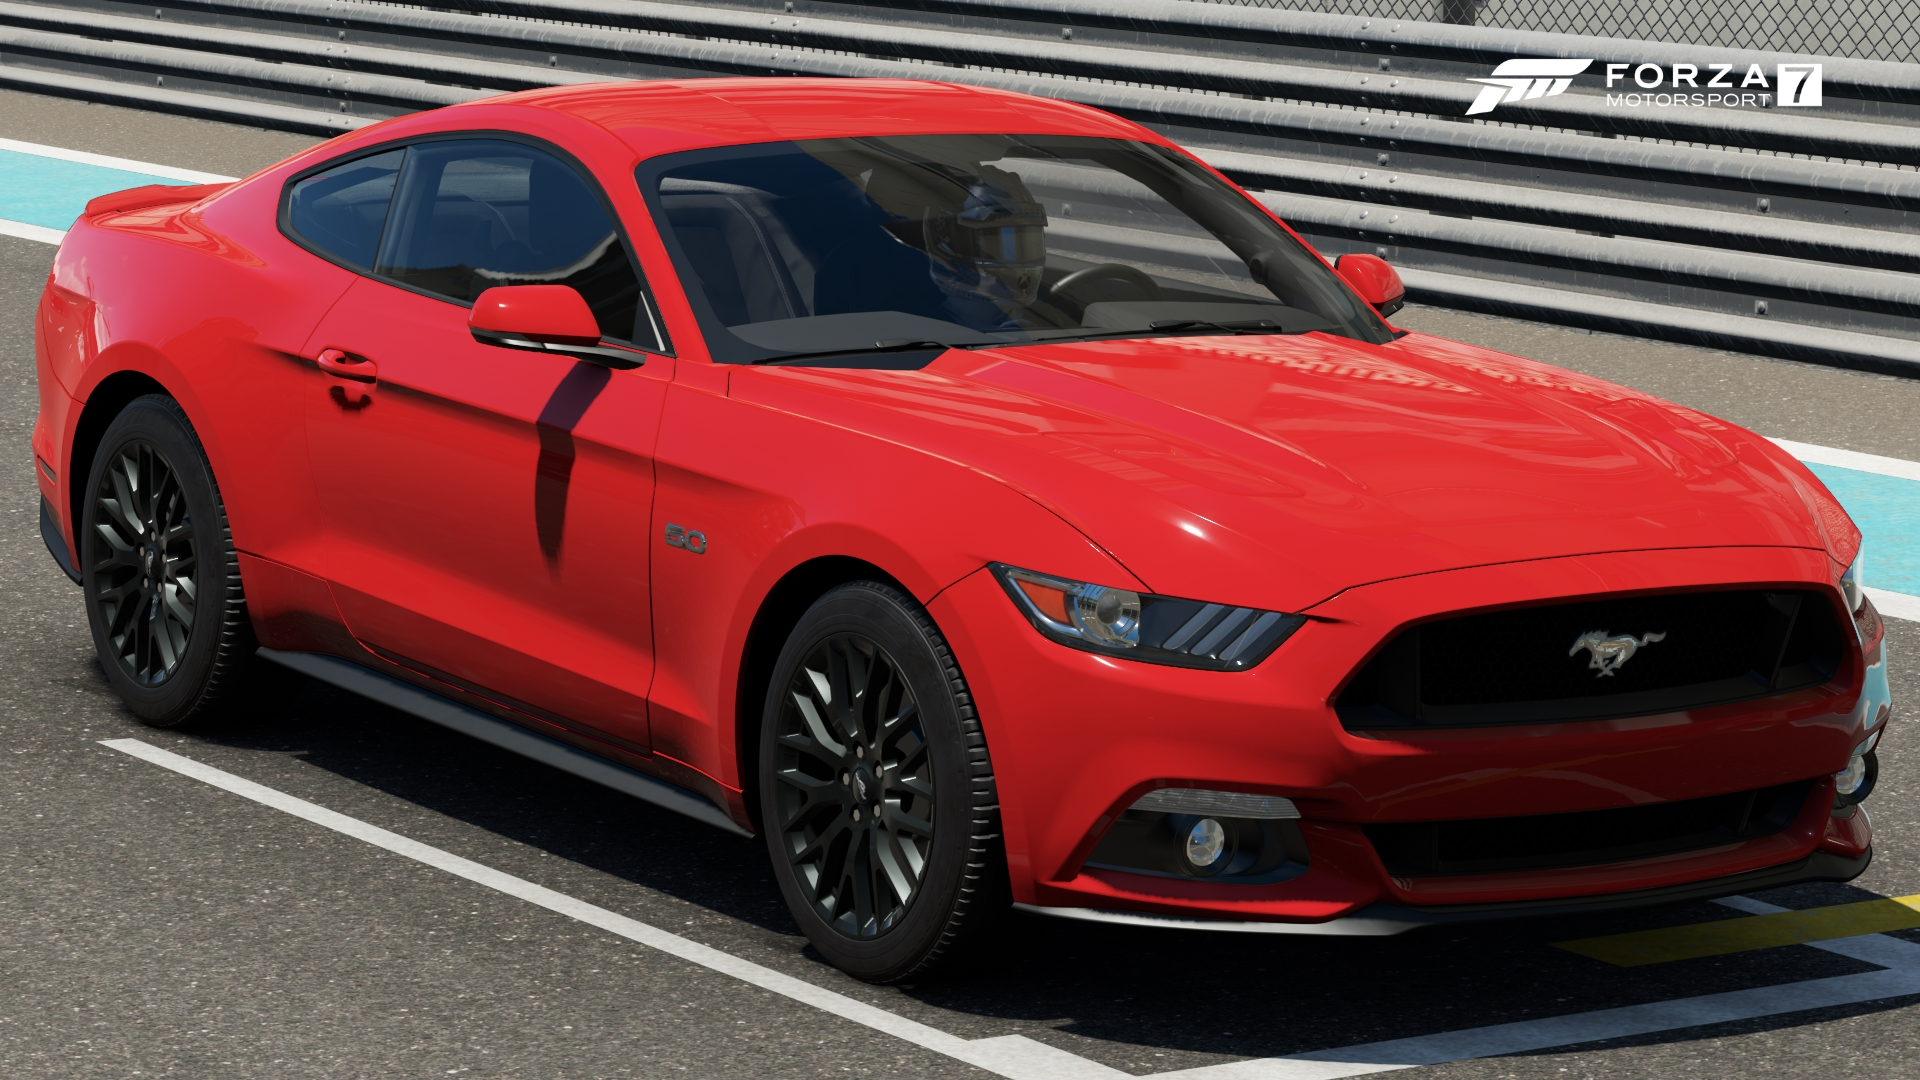 Ford Mustang Wiki Ford Mustang Gt  Forza Motorsport Wiki Fandom Powered By Wikia